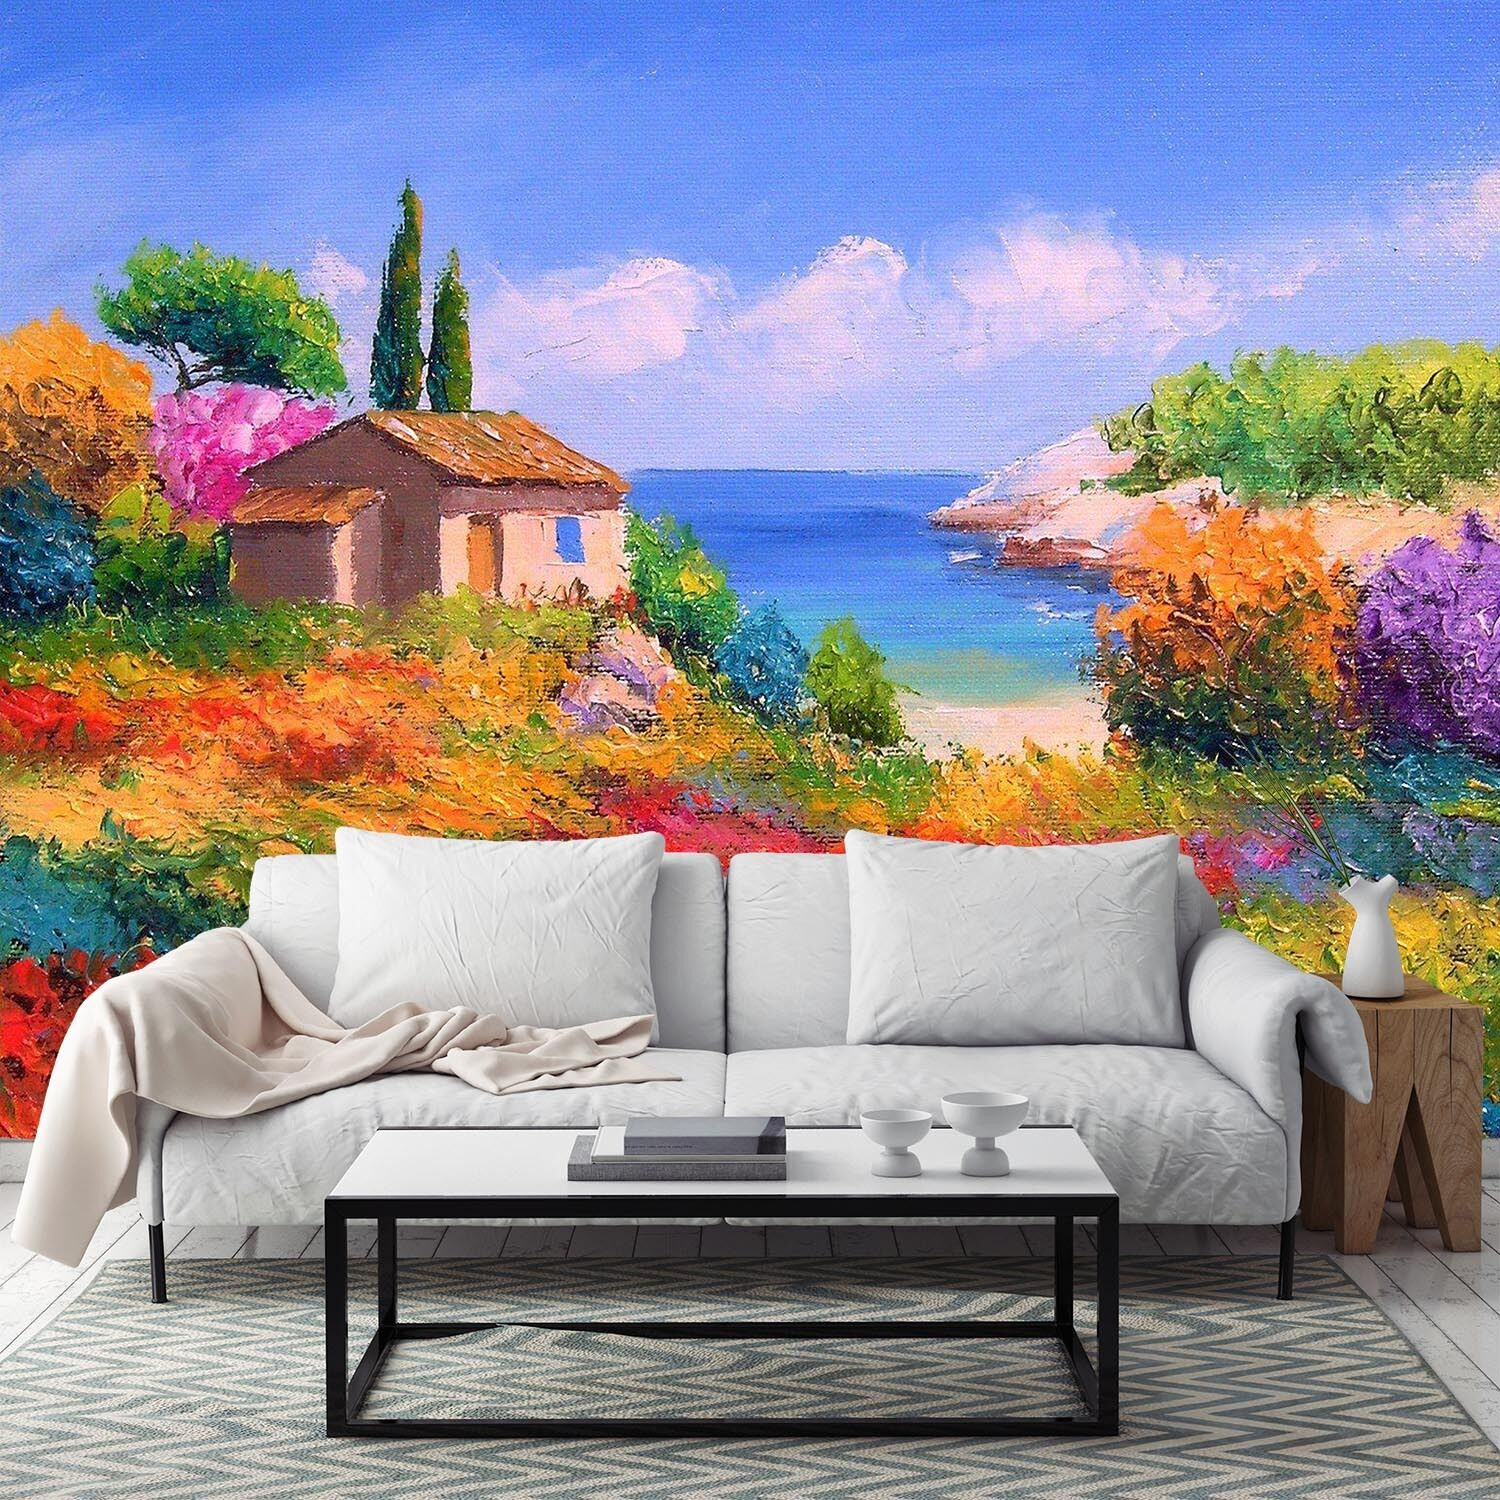 3D Farbeful House Painting 2139 Wall Paper Wall Print Decal Wall AJ WALLPAPER CA